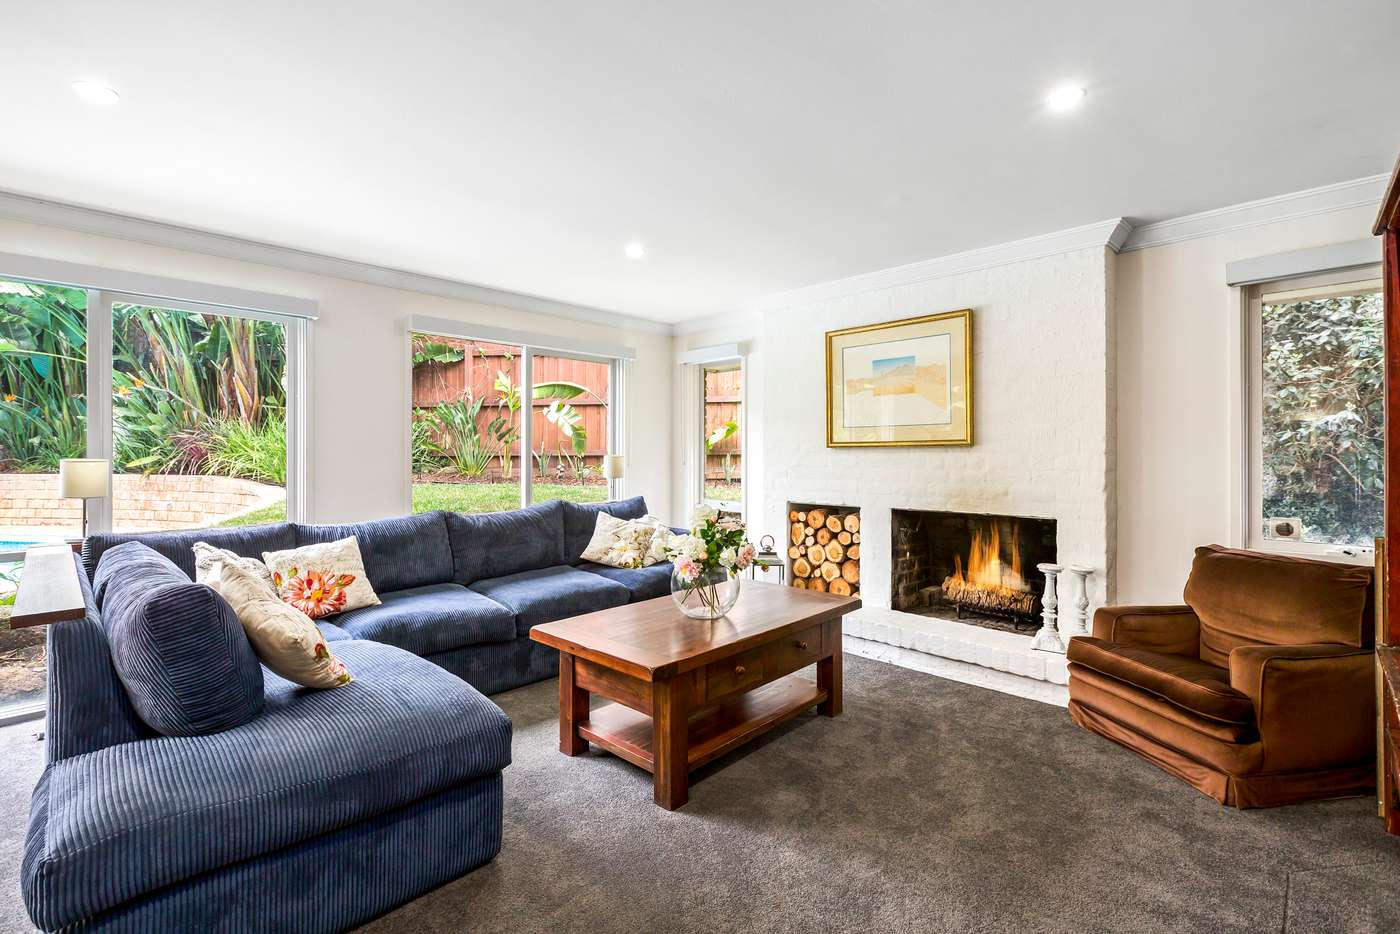 Fifth view of Homely house listing, 12 Rosco Drive, Templestowe VIC 3106